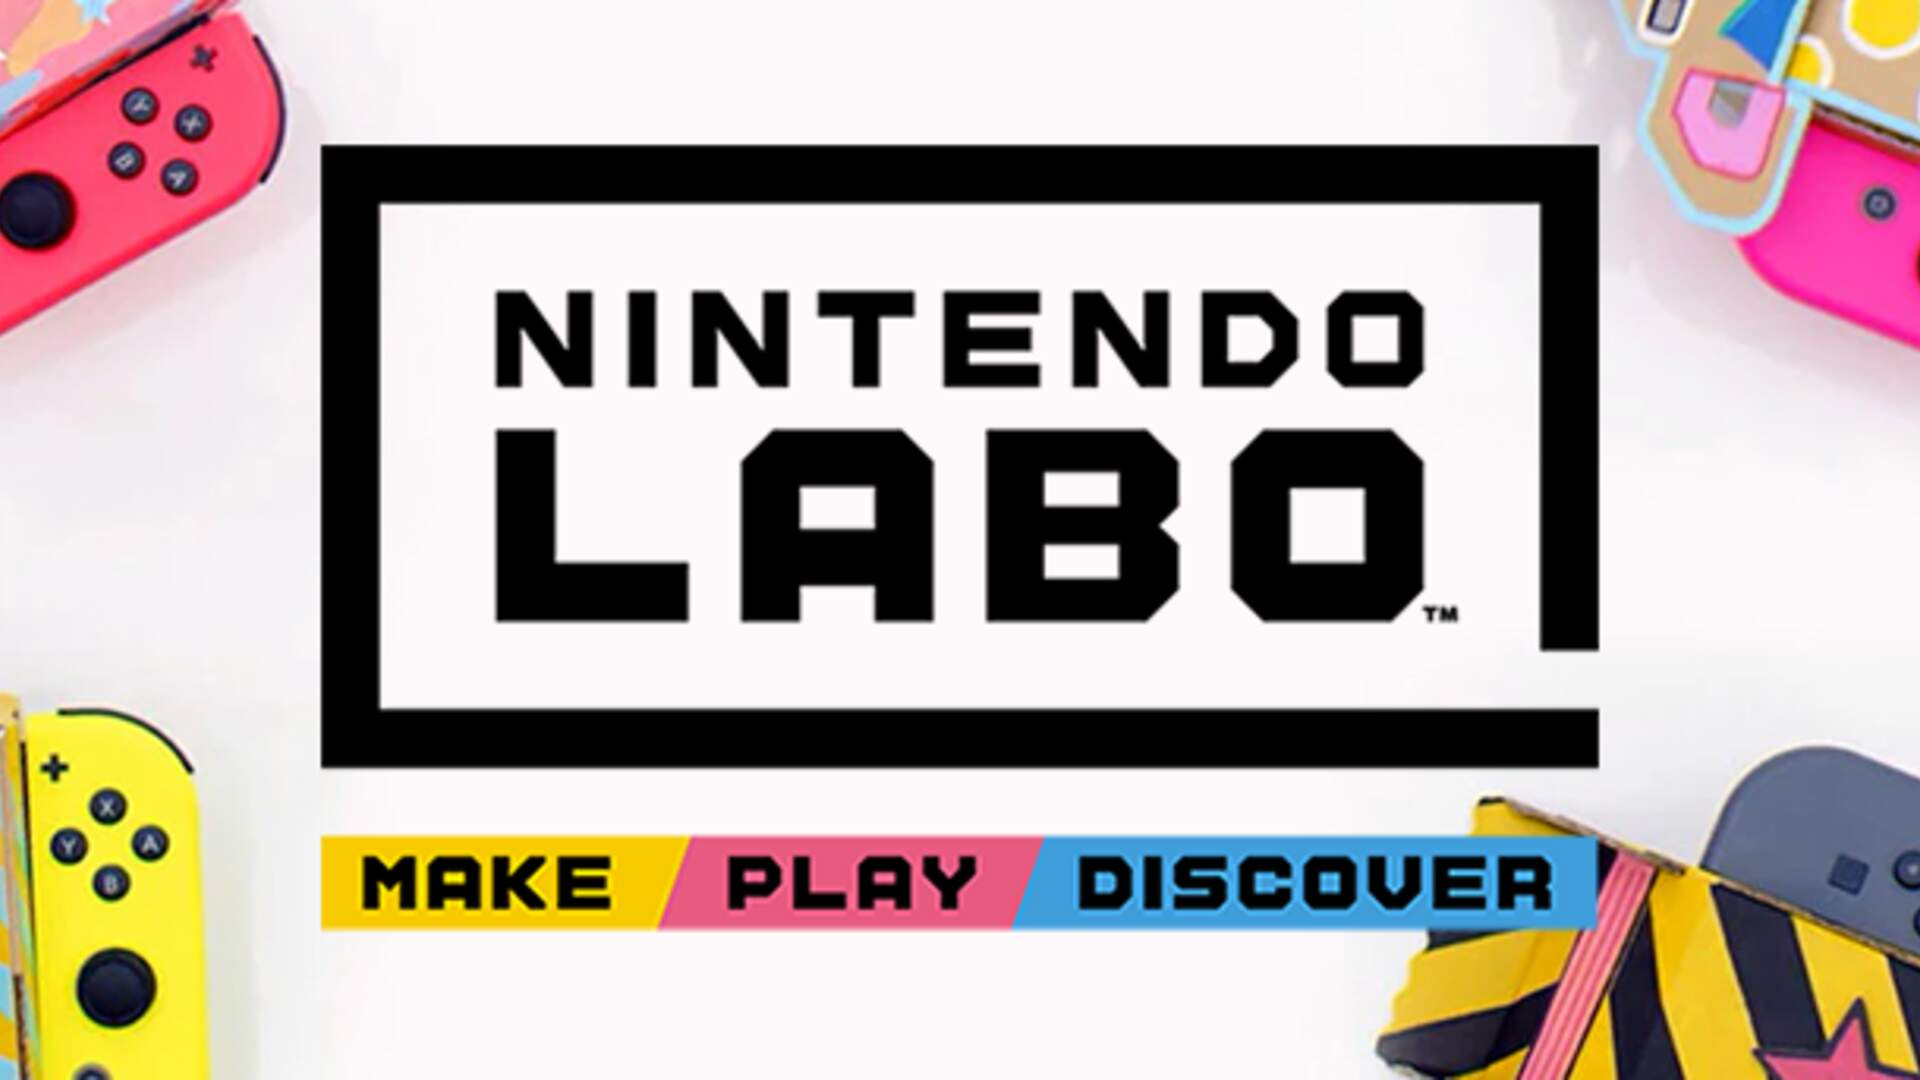 Nintendo Labo Takes Cardboard Toys to a new Level - Price, Release Date, and Games - Everything we Know